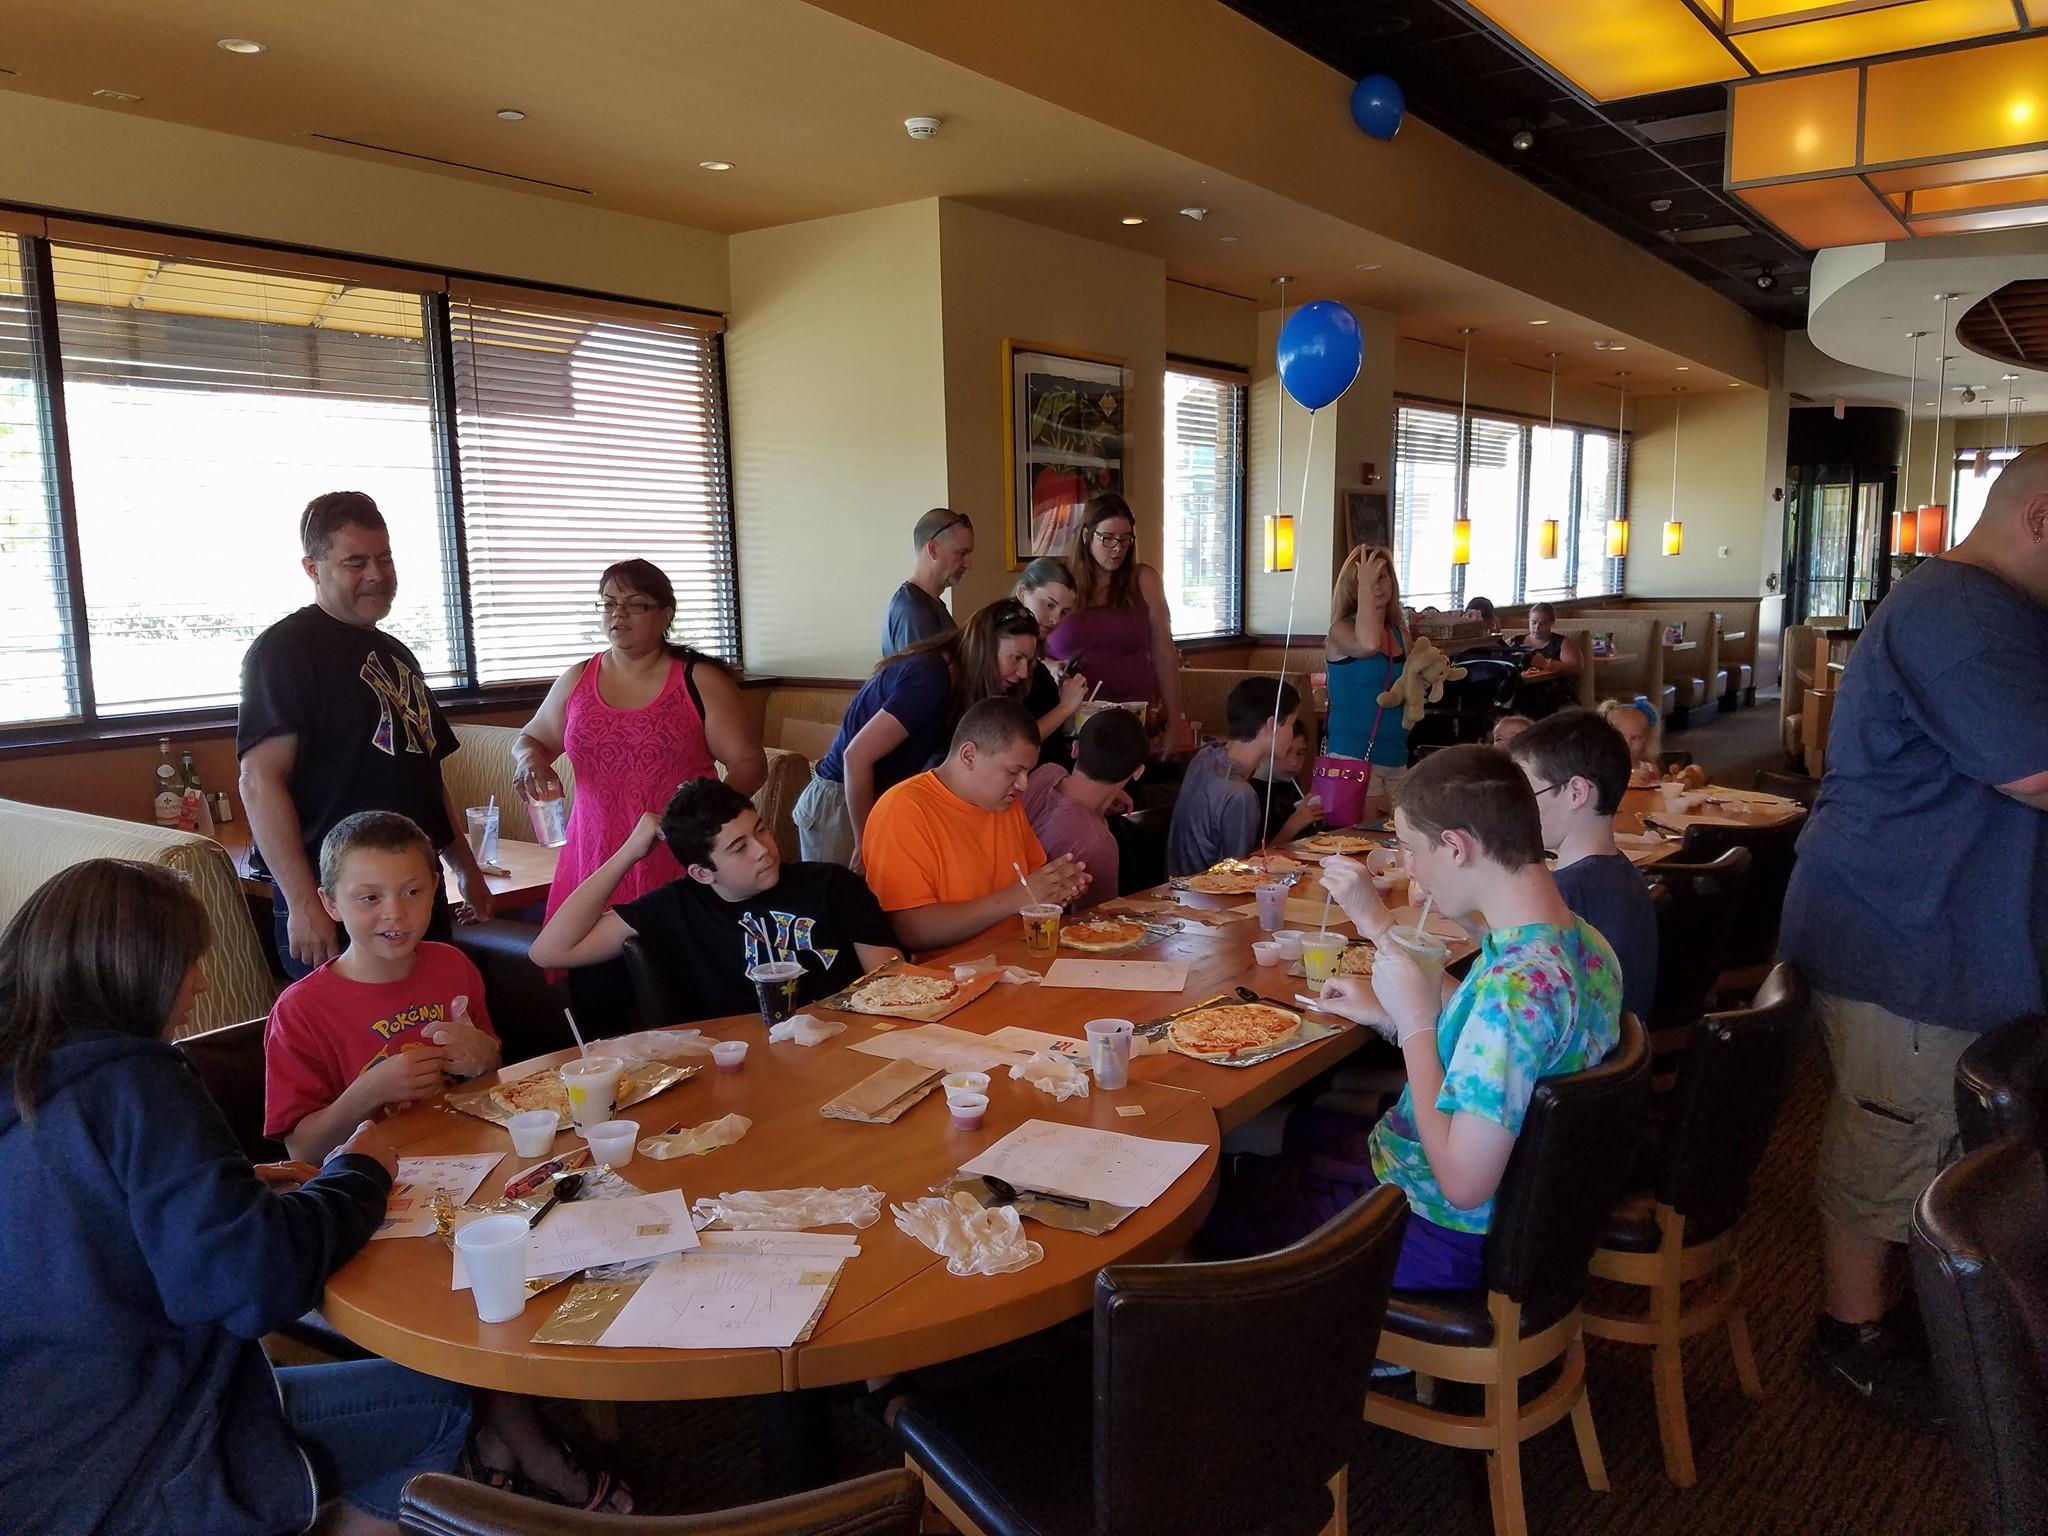 cpk pizza party fundraiser to benefit justice 4 autism